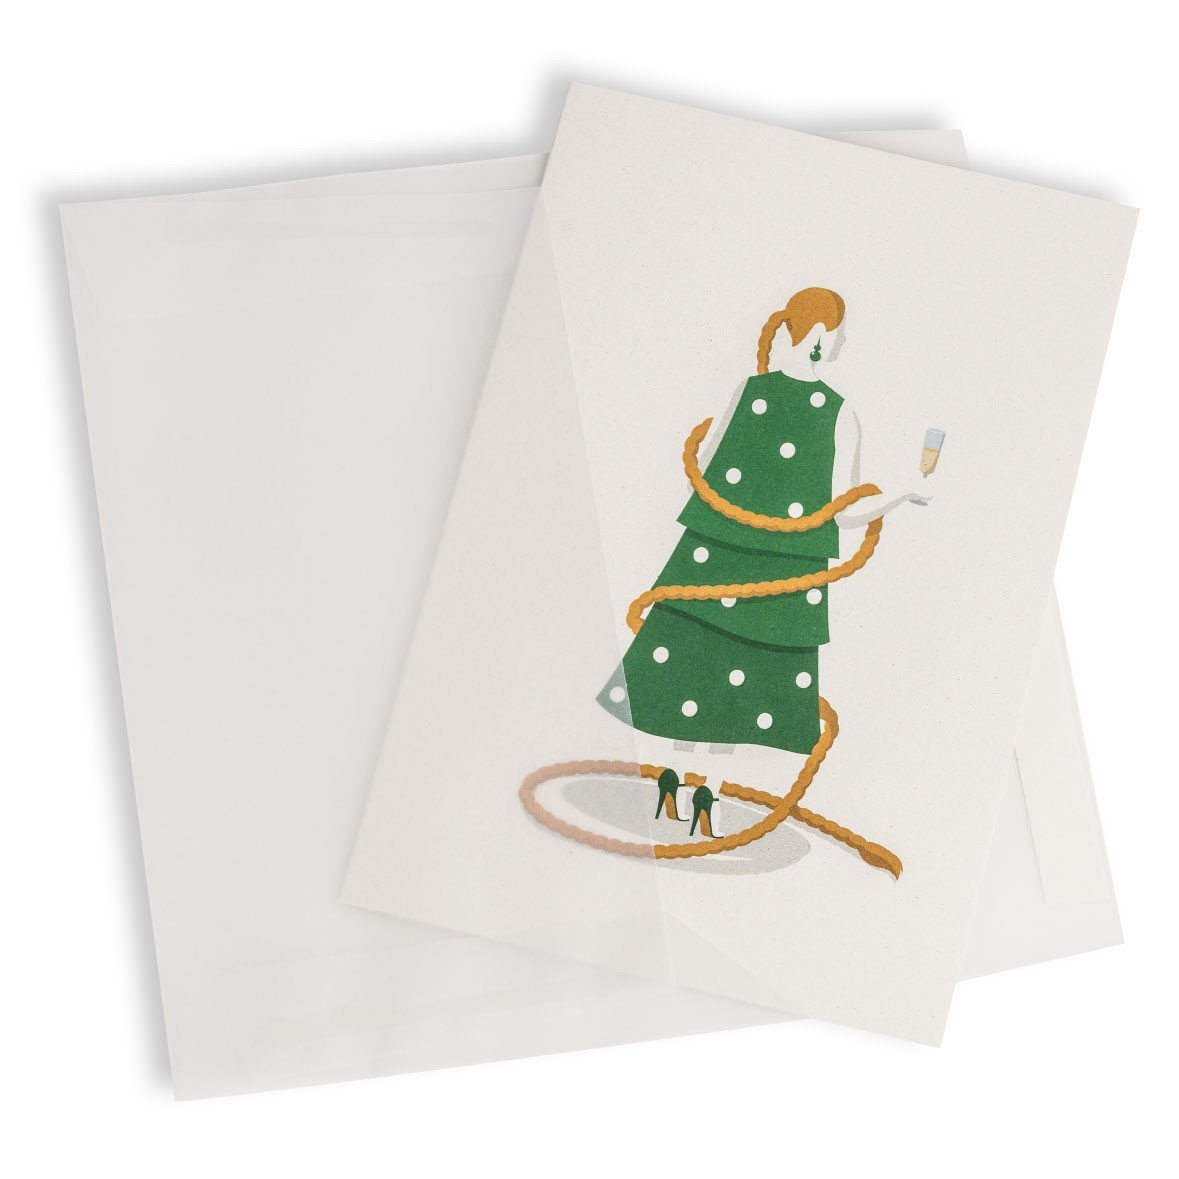 Christmas Tree Greeting Card - Christmas Cards - MULTIFOLIA ATELIER di Rita Girola - Naiise